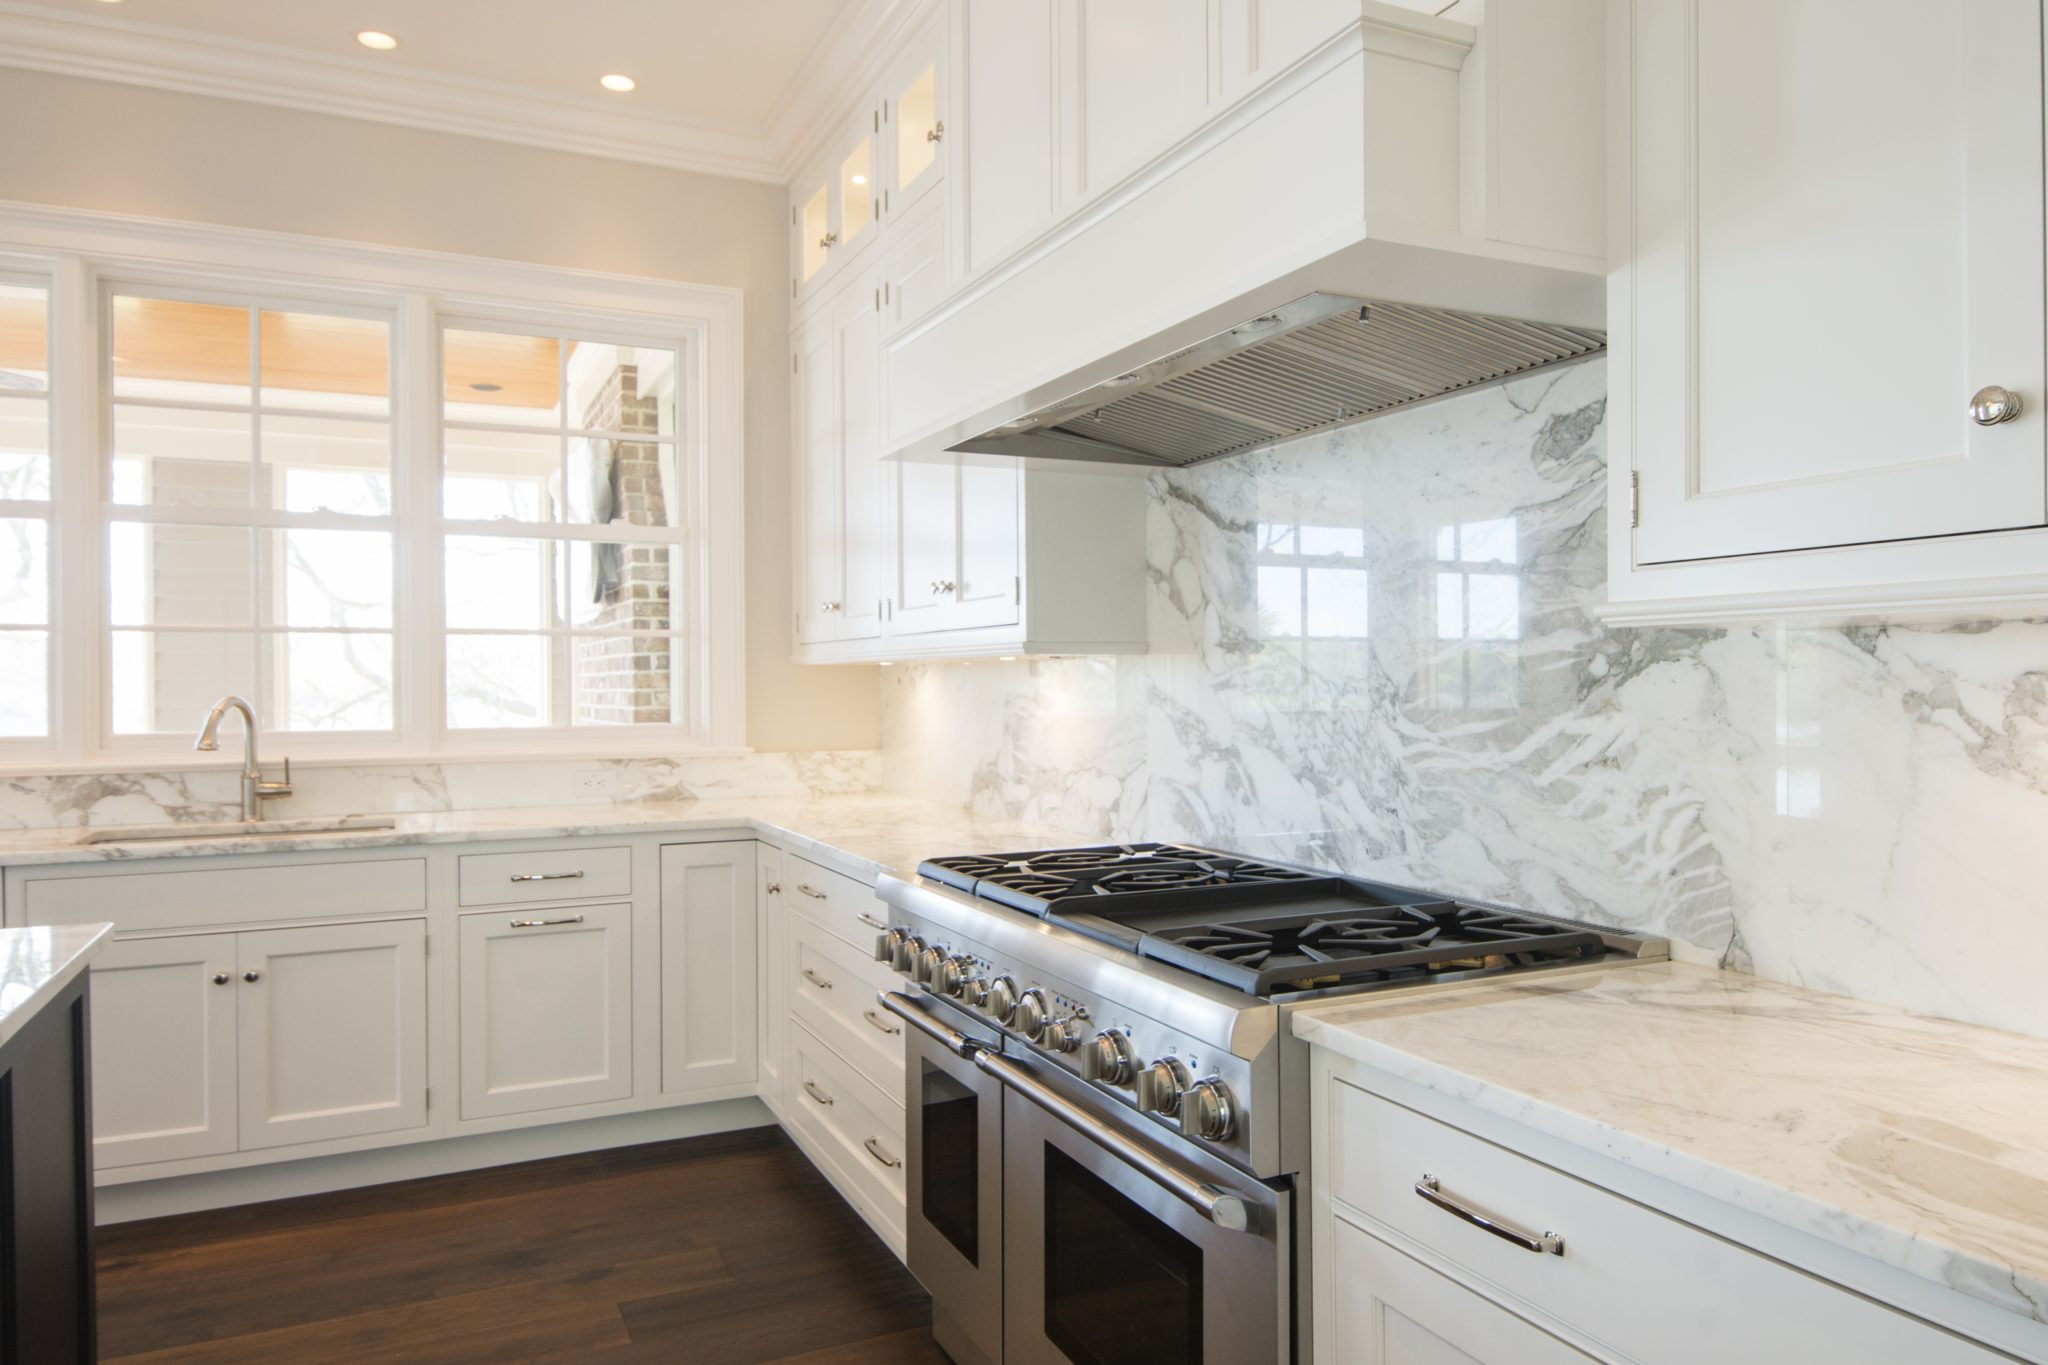 Kitchen with white cabinets and full height marble slab backsplash by Island Architects